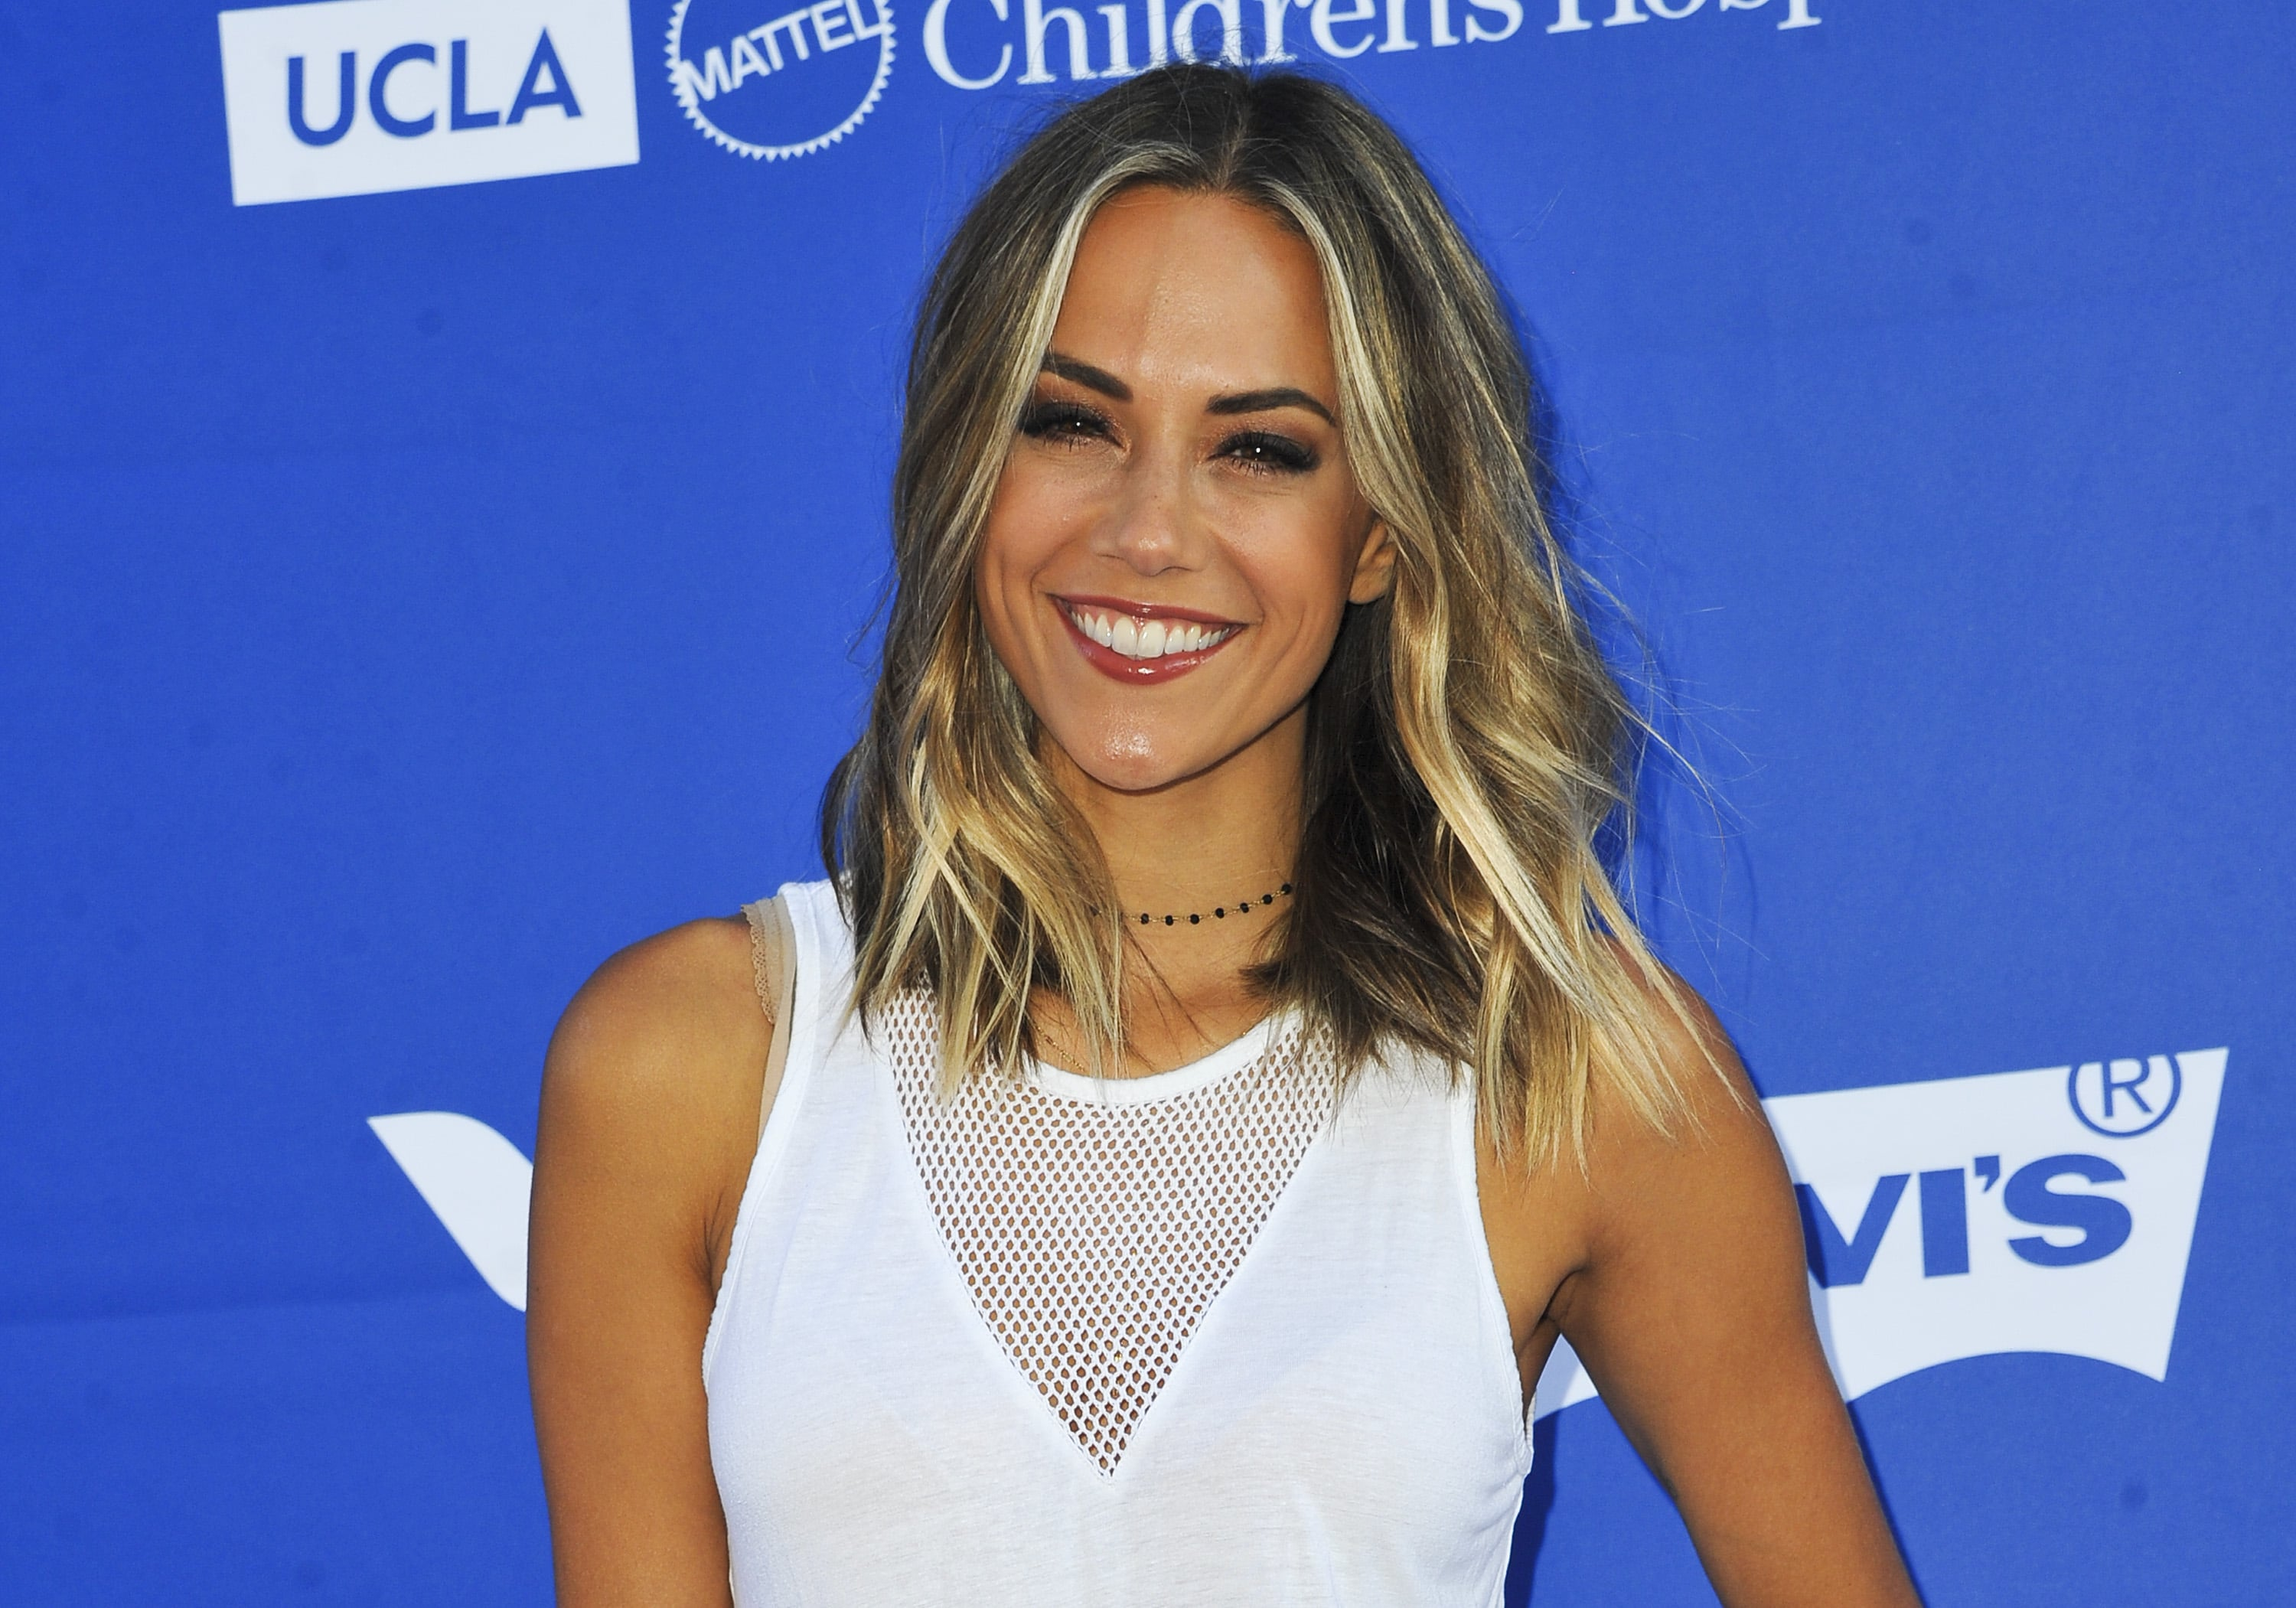 Jana Kramer Announces Pregnancy in Social Media Ad